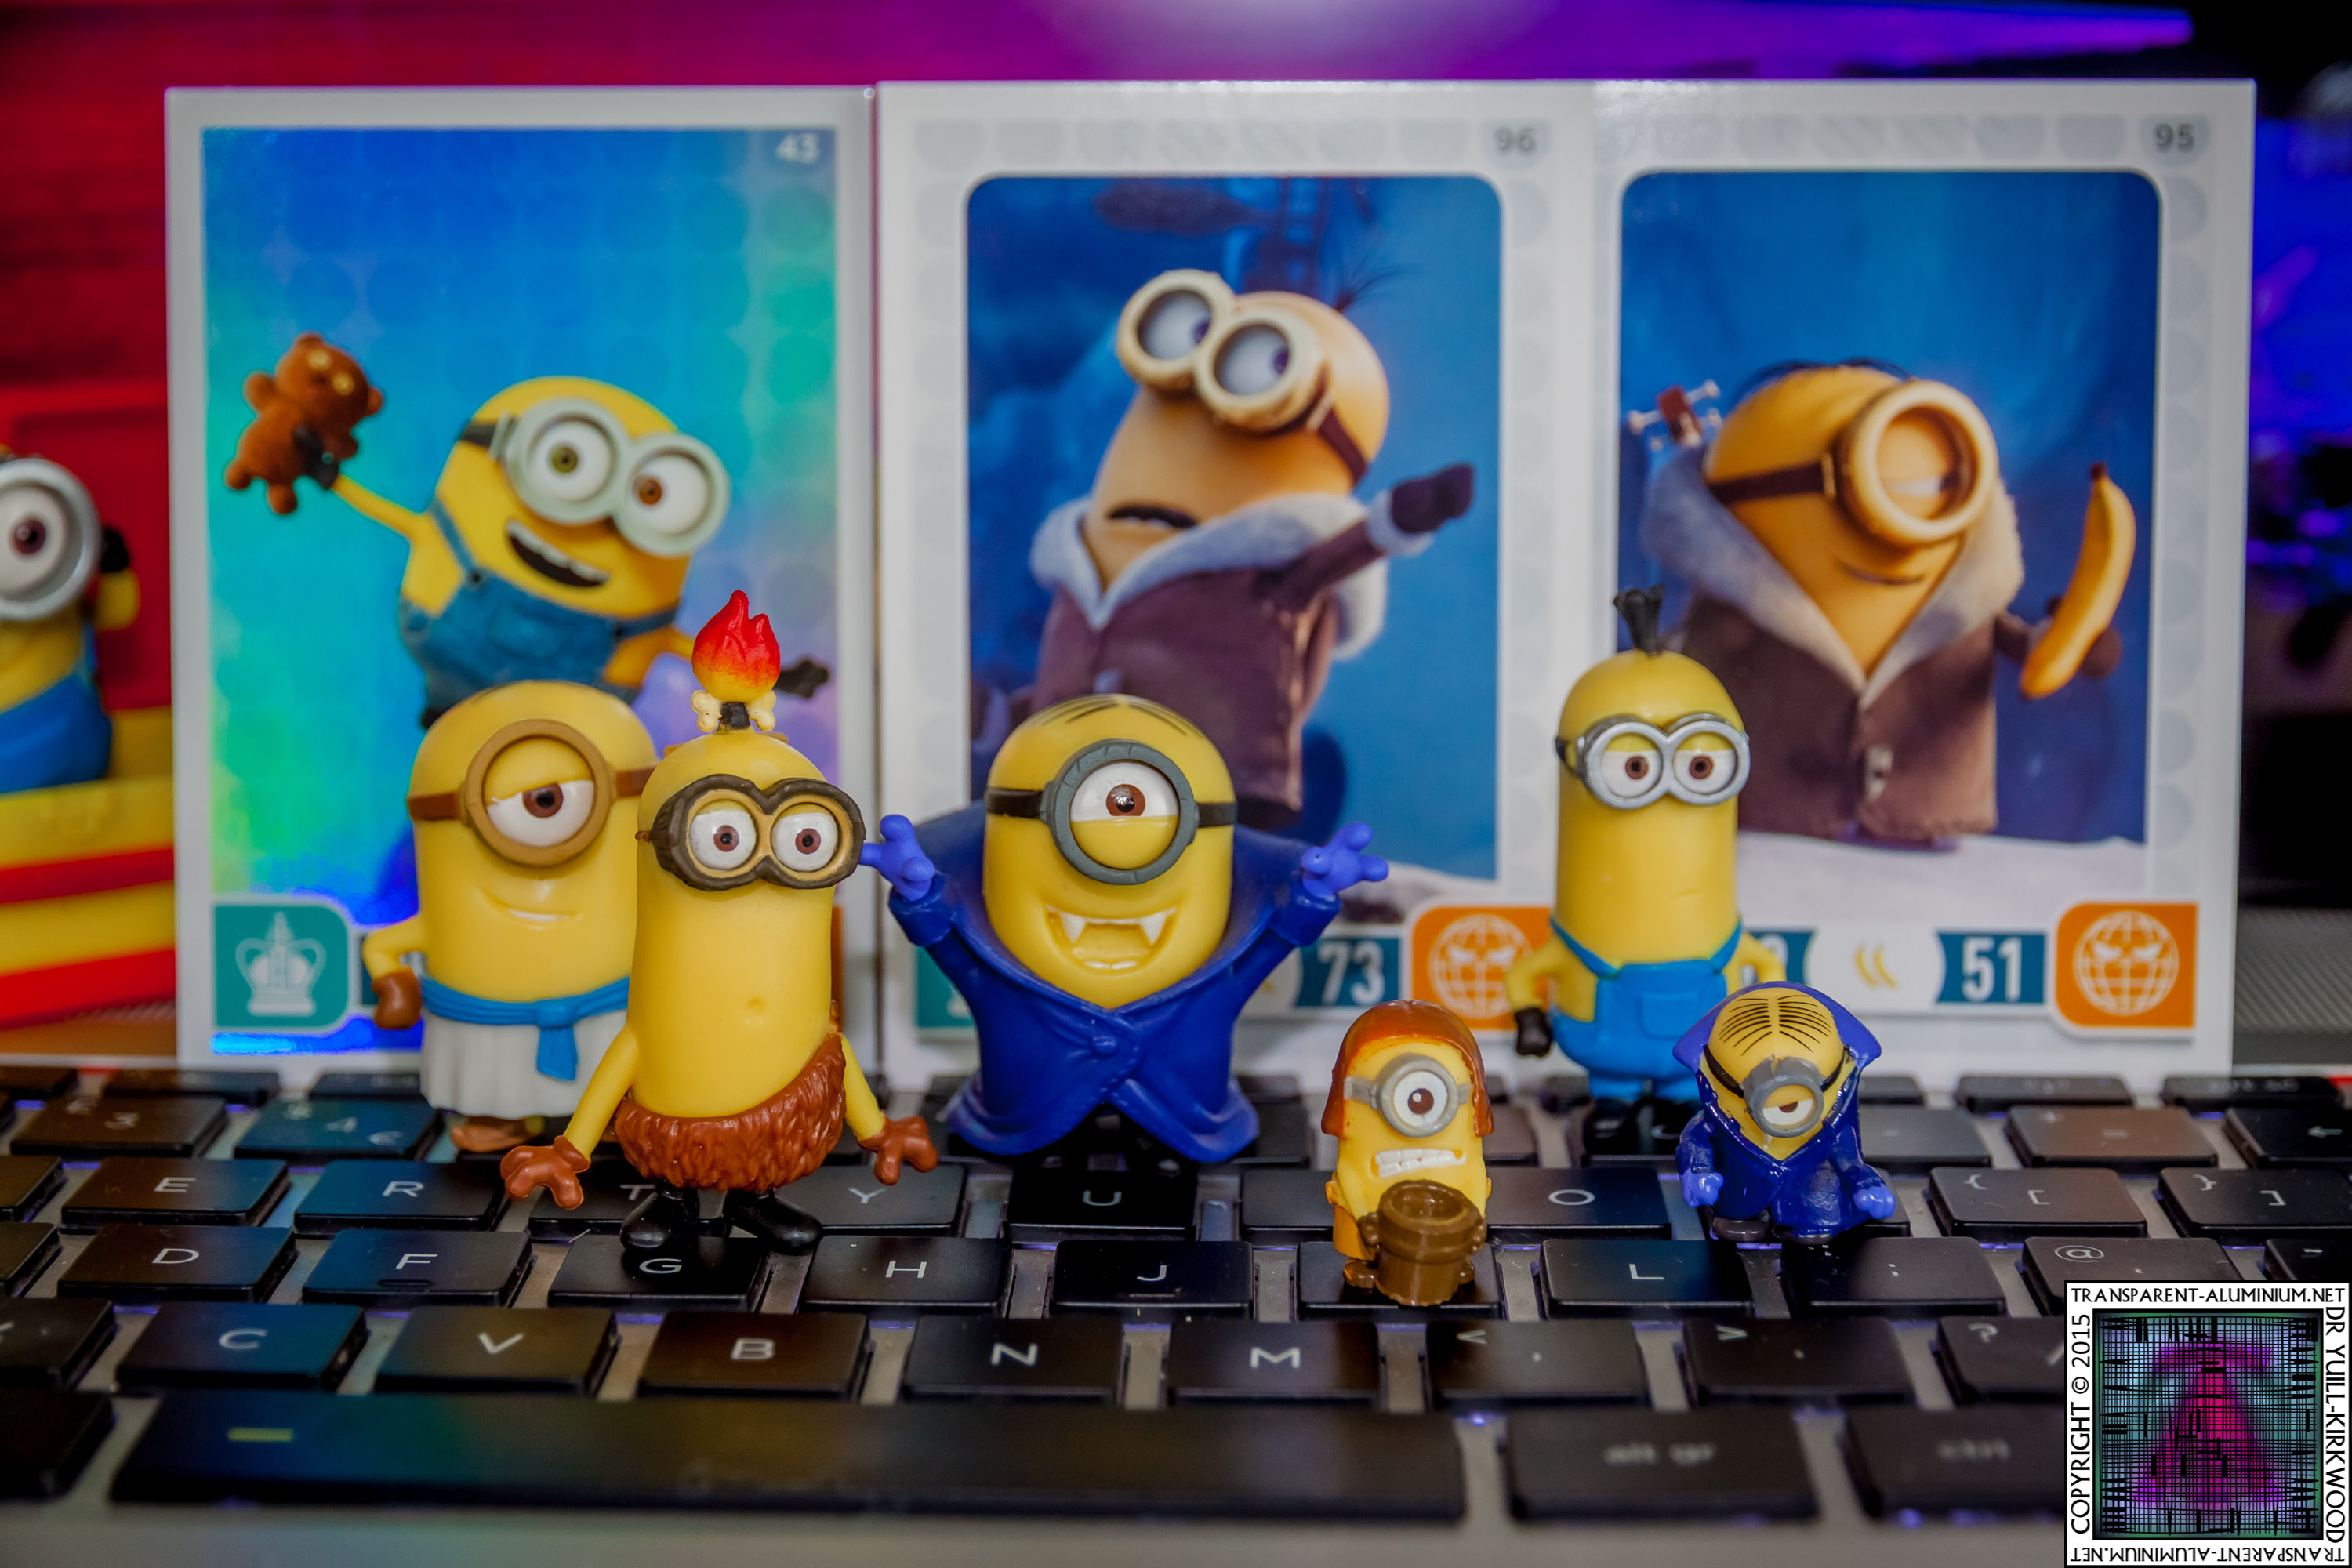 Minions Movies Blind Bags Trading Cards & Challenge Game Photos